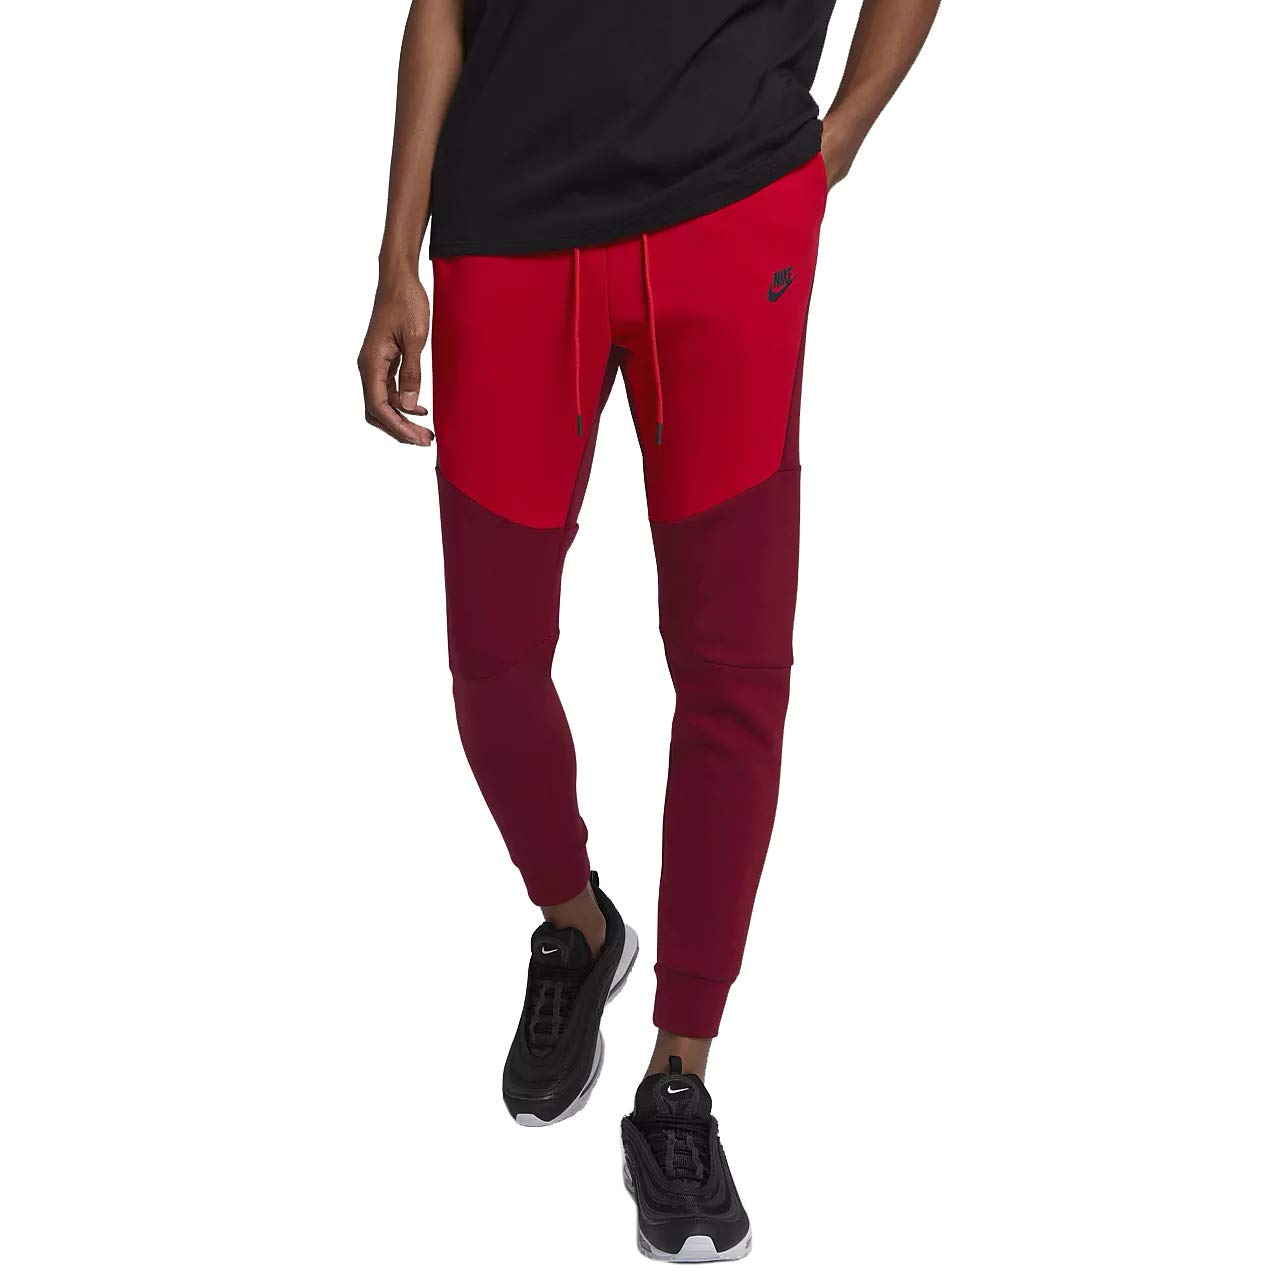 Nike Mens Sportswear Tech Fleece Jogger Sweatpants Team Red University Red Black 805162 677 Size X Large Amazon In Sports Fitness Outdoors